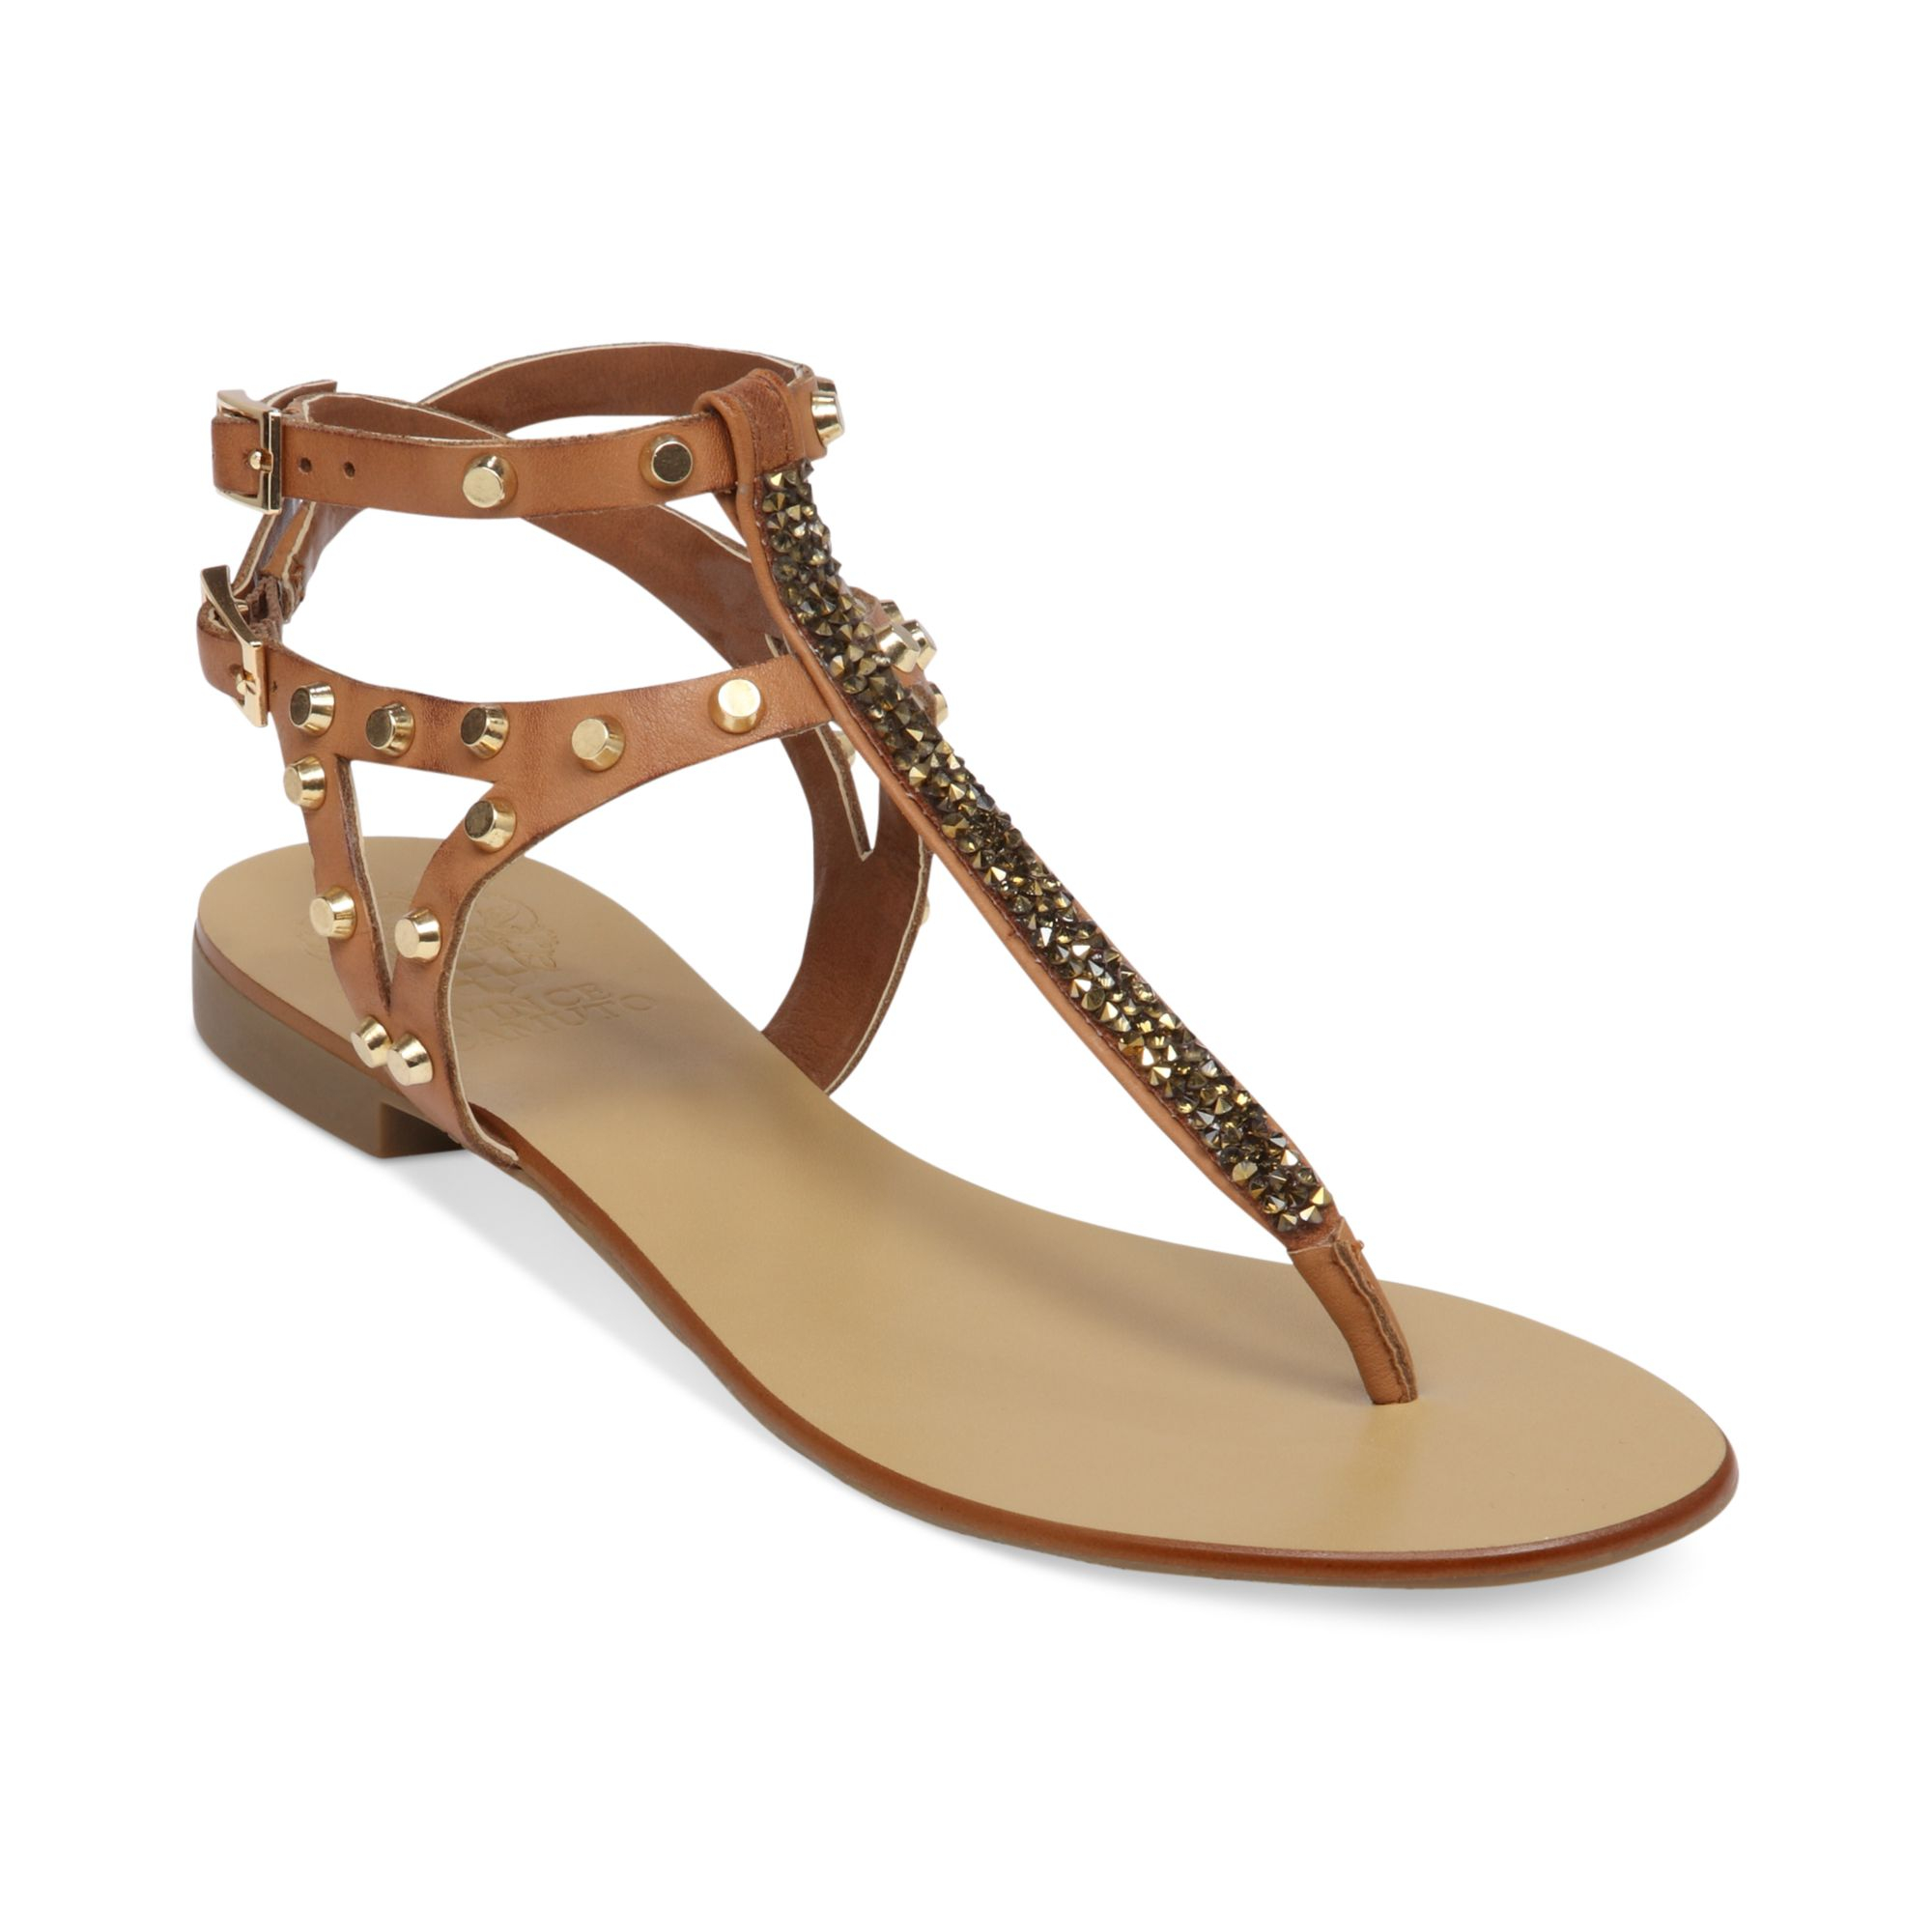 Vince Camuto Jemile Flat Thong Sandals In Beige Fudge Lyst